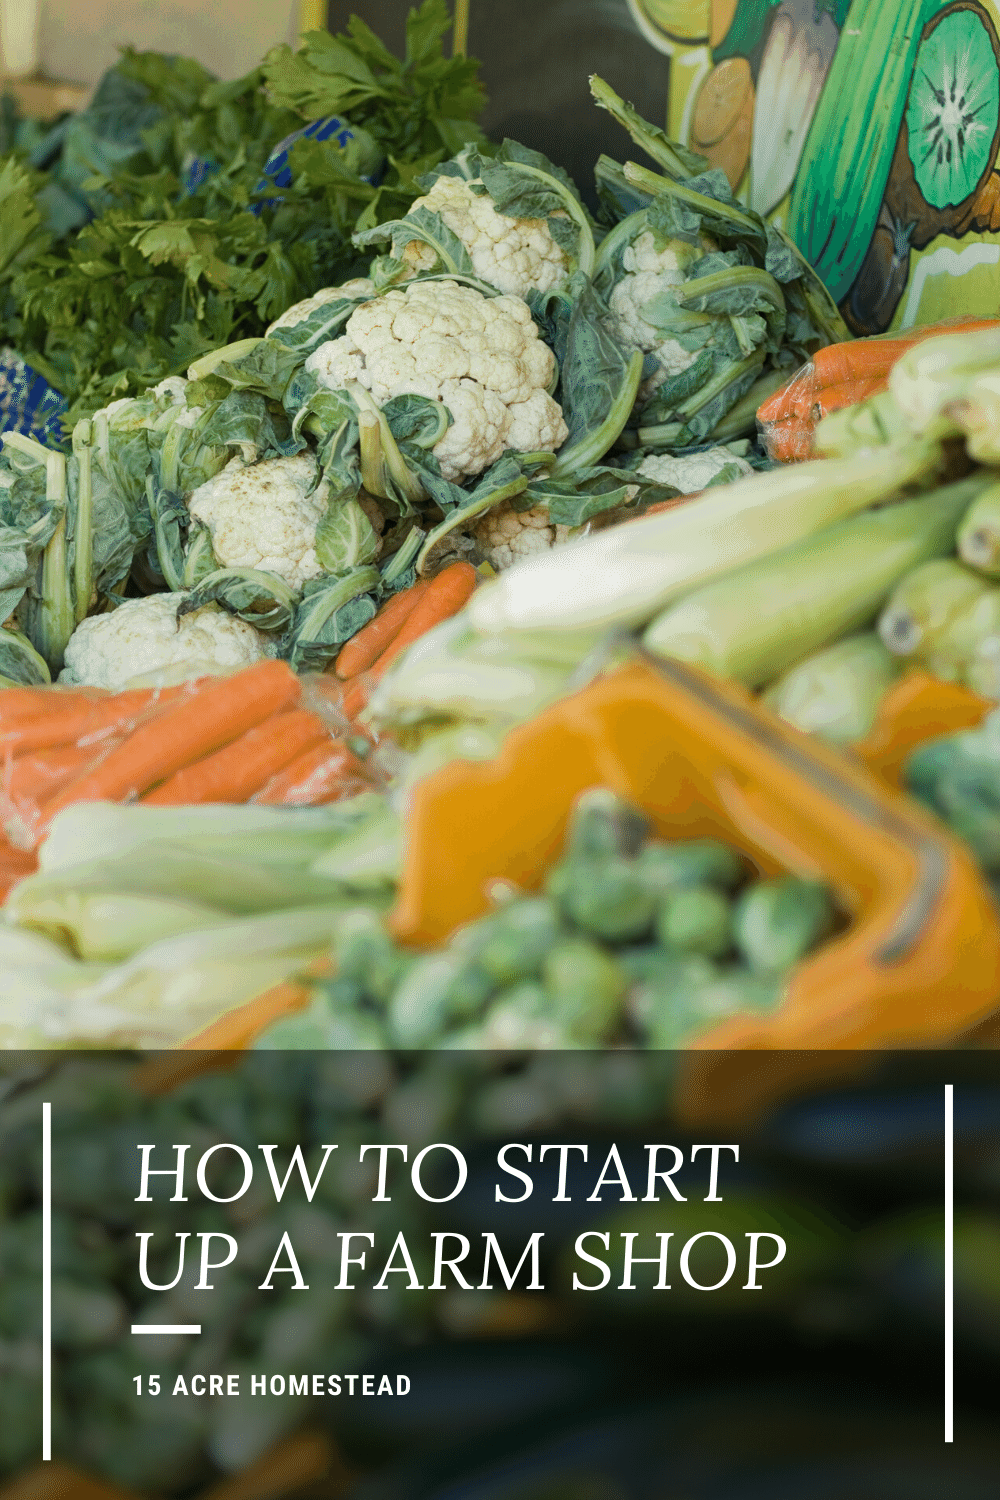 Have you ever considered starting your own farm shop? Here are some tips to get you started.